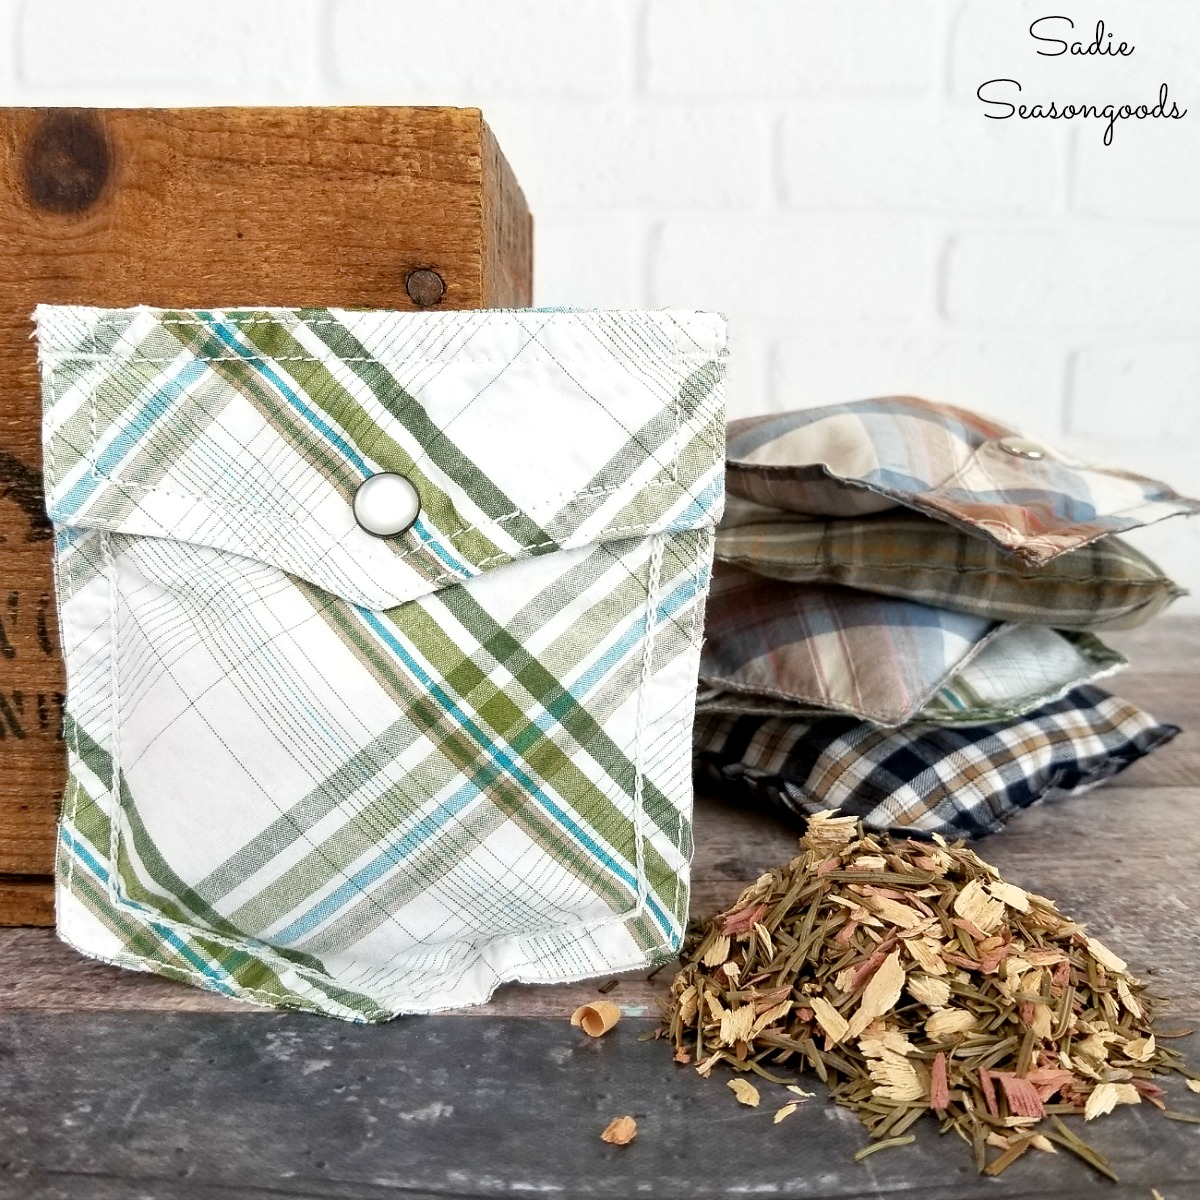 Scented Sachets from Repurposed Clothing as DIY Gifts for Dad